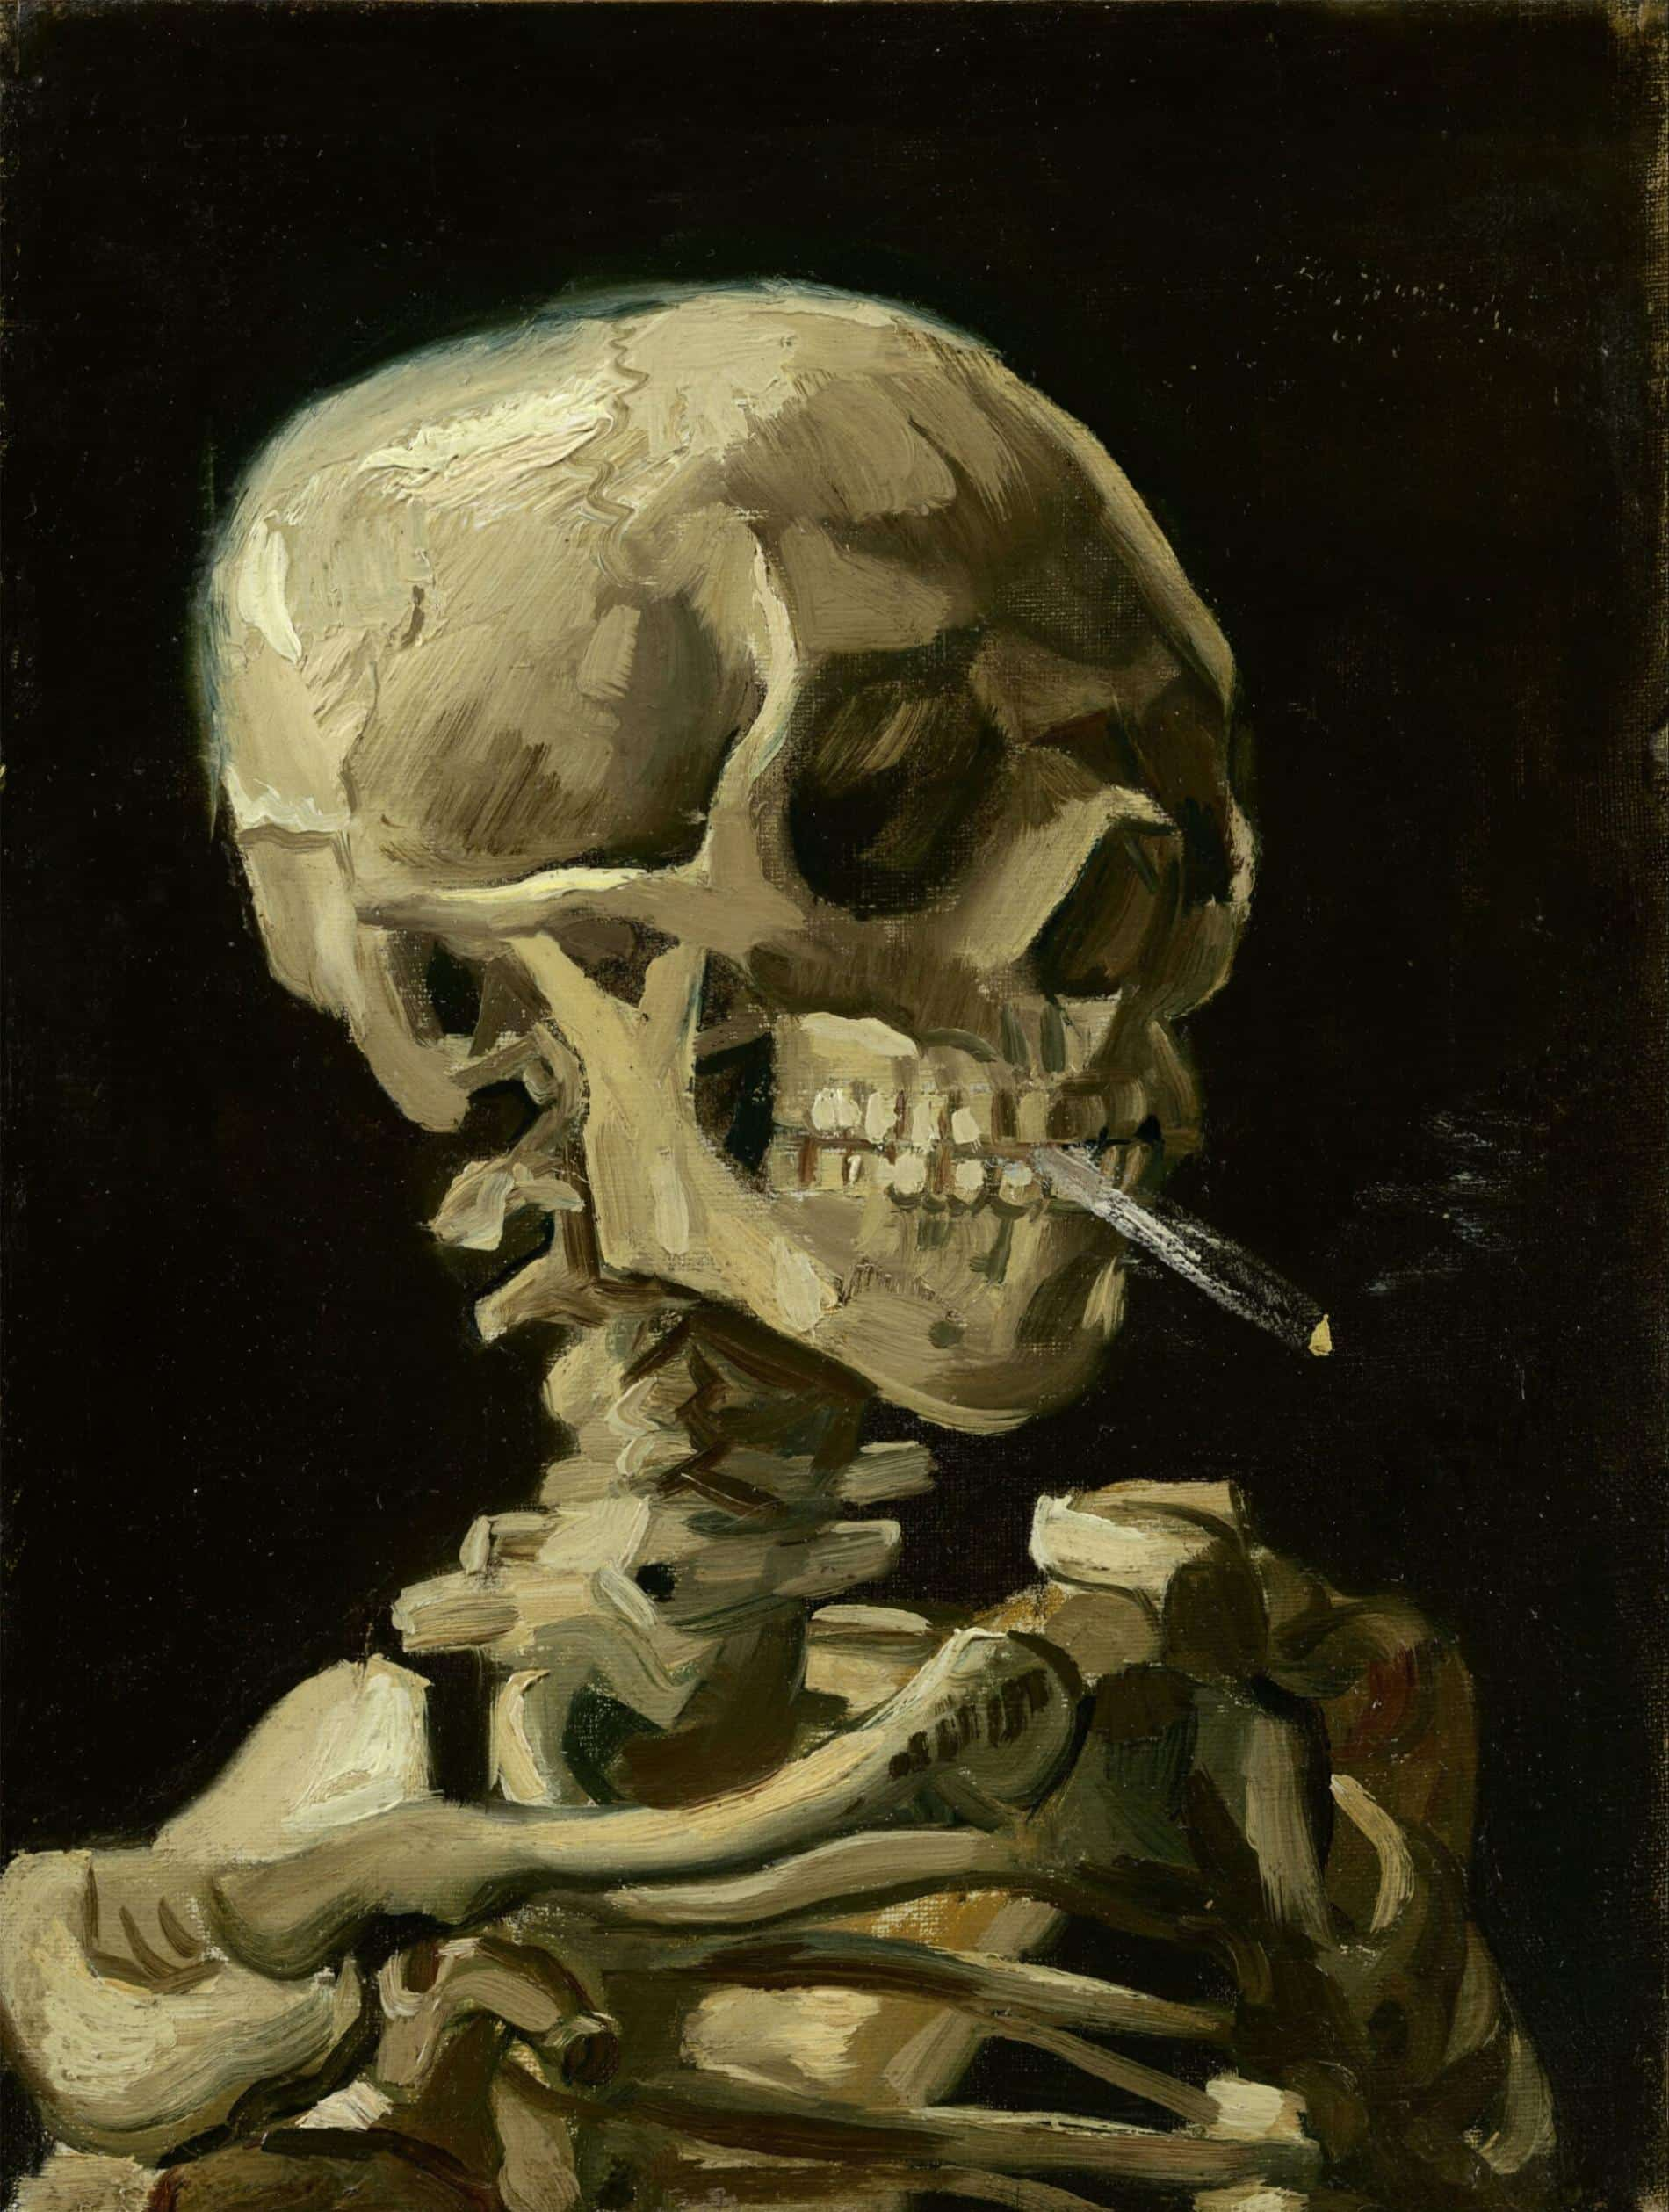 Head of a Skeleton with a Burning Cigarette van gogh